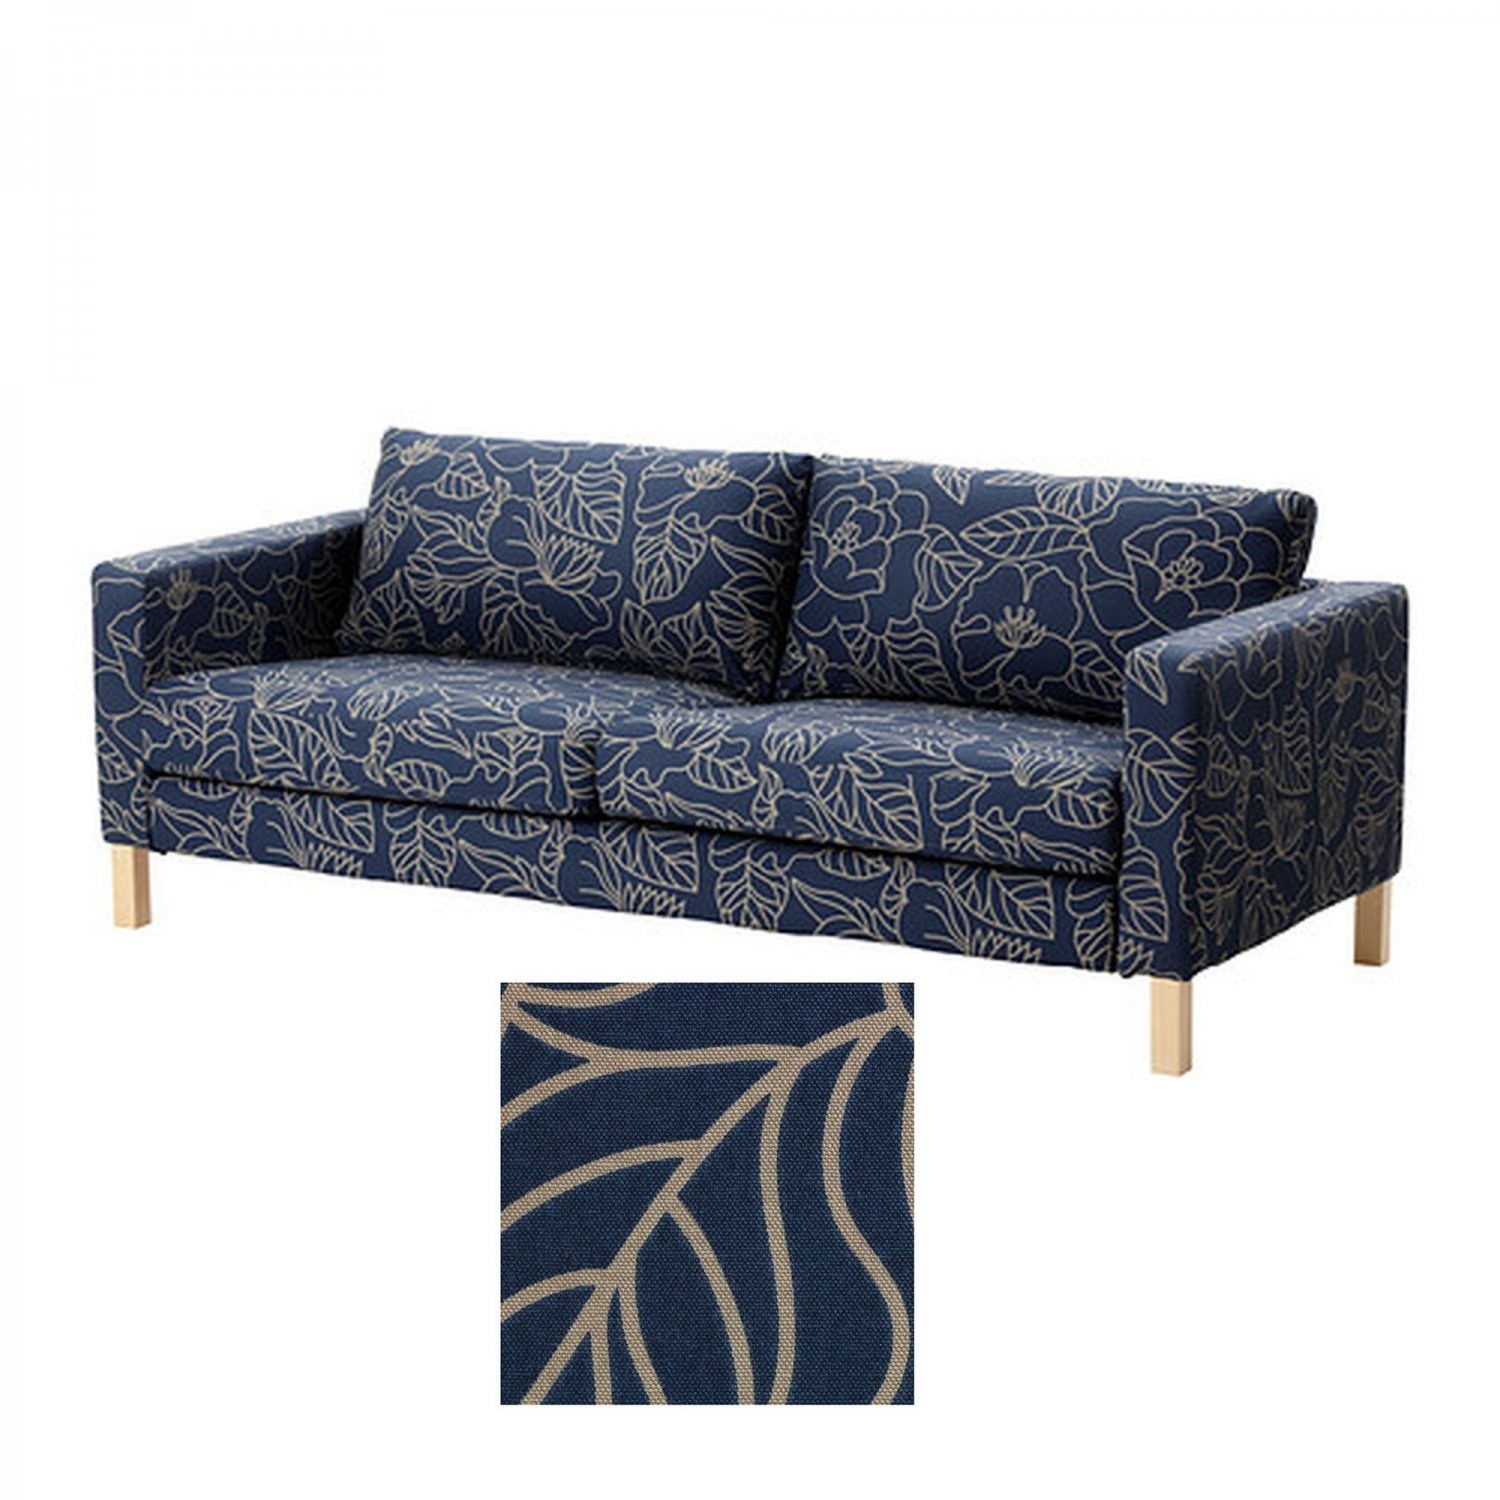 cardboard sofa new leaf grey leather dfs ikea karlstad 3 seat slipcover cover bladaker blue